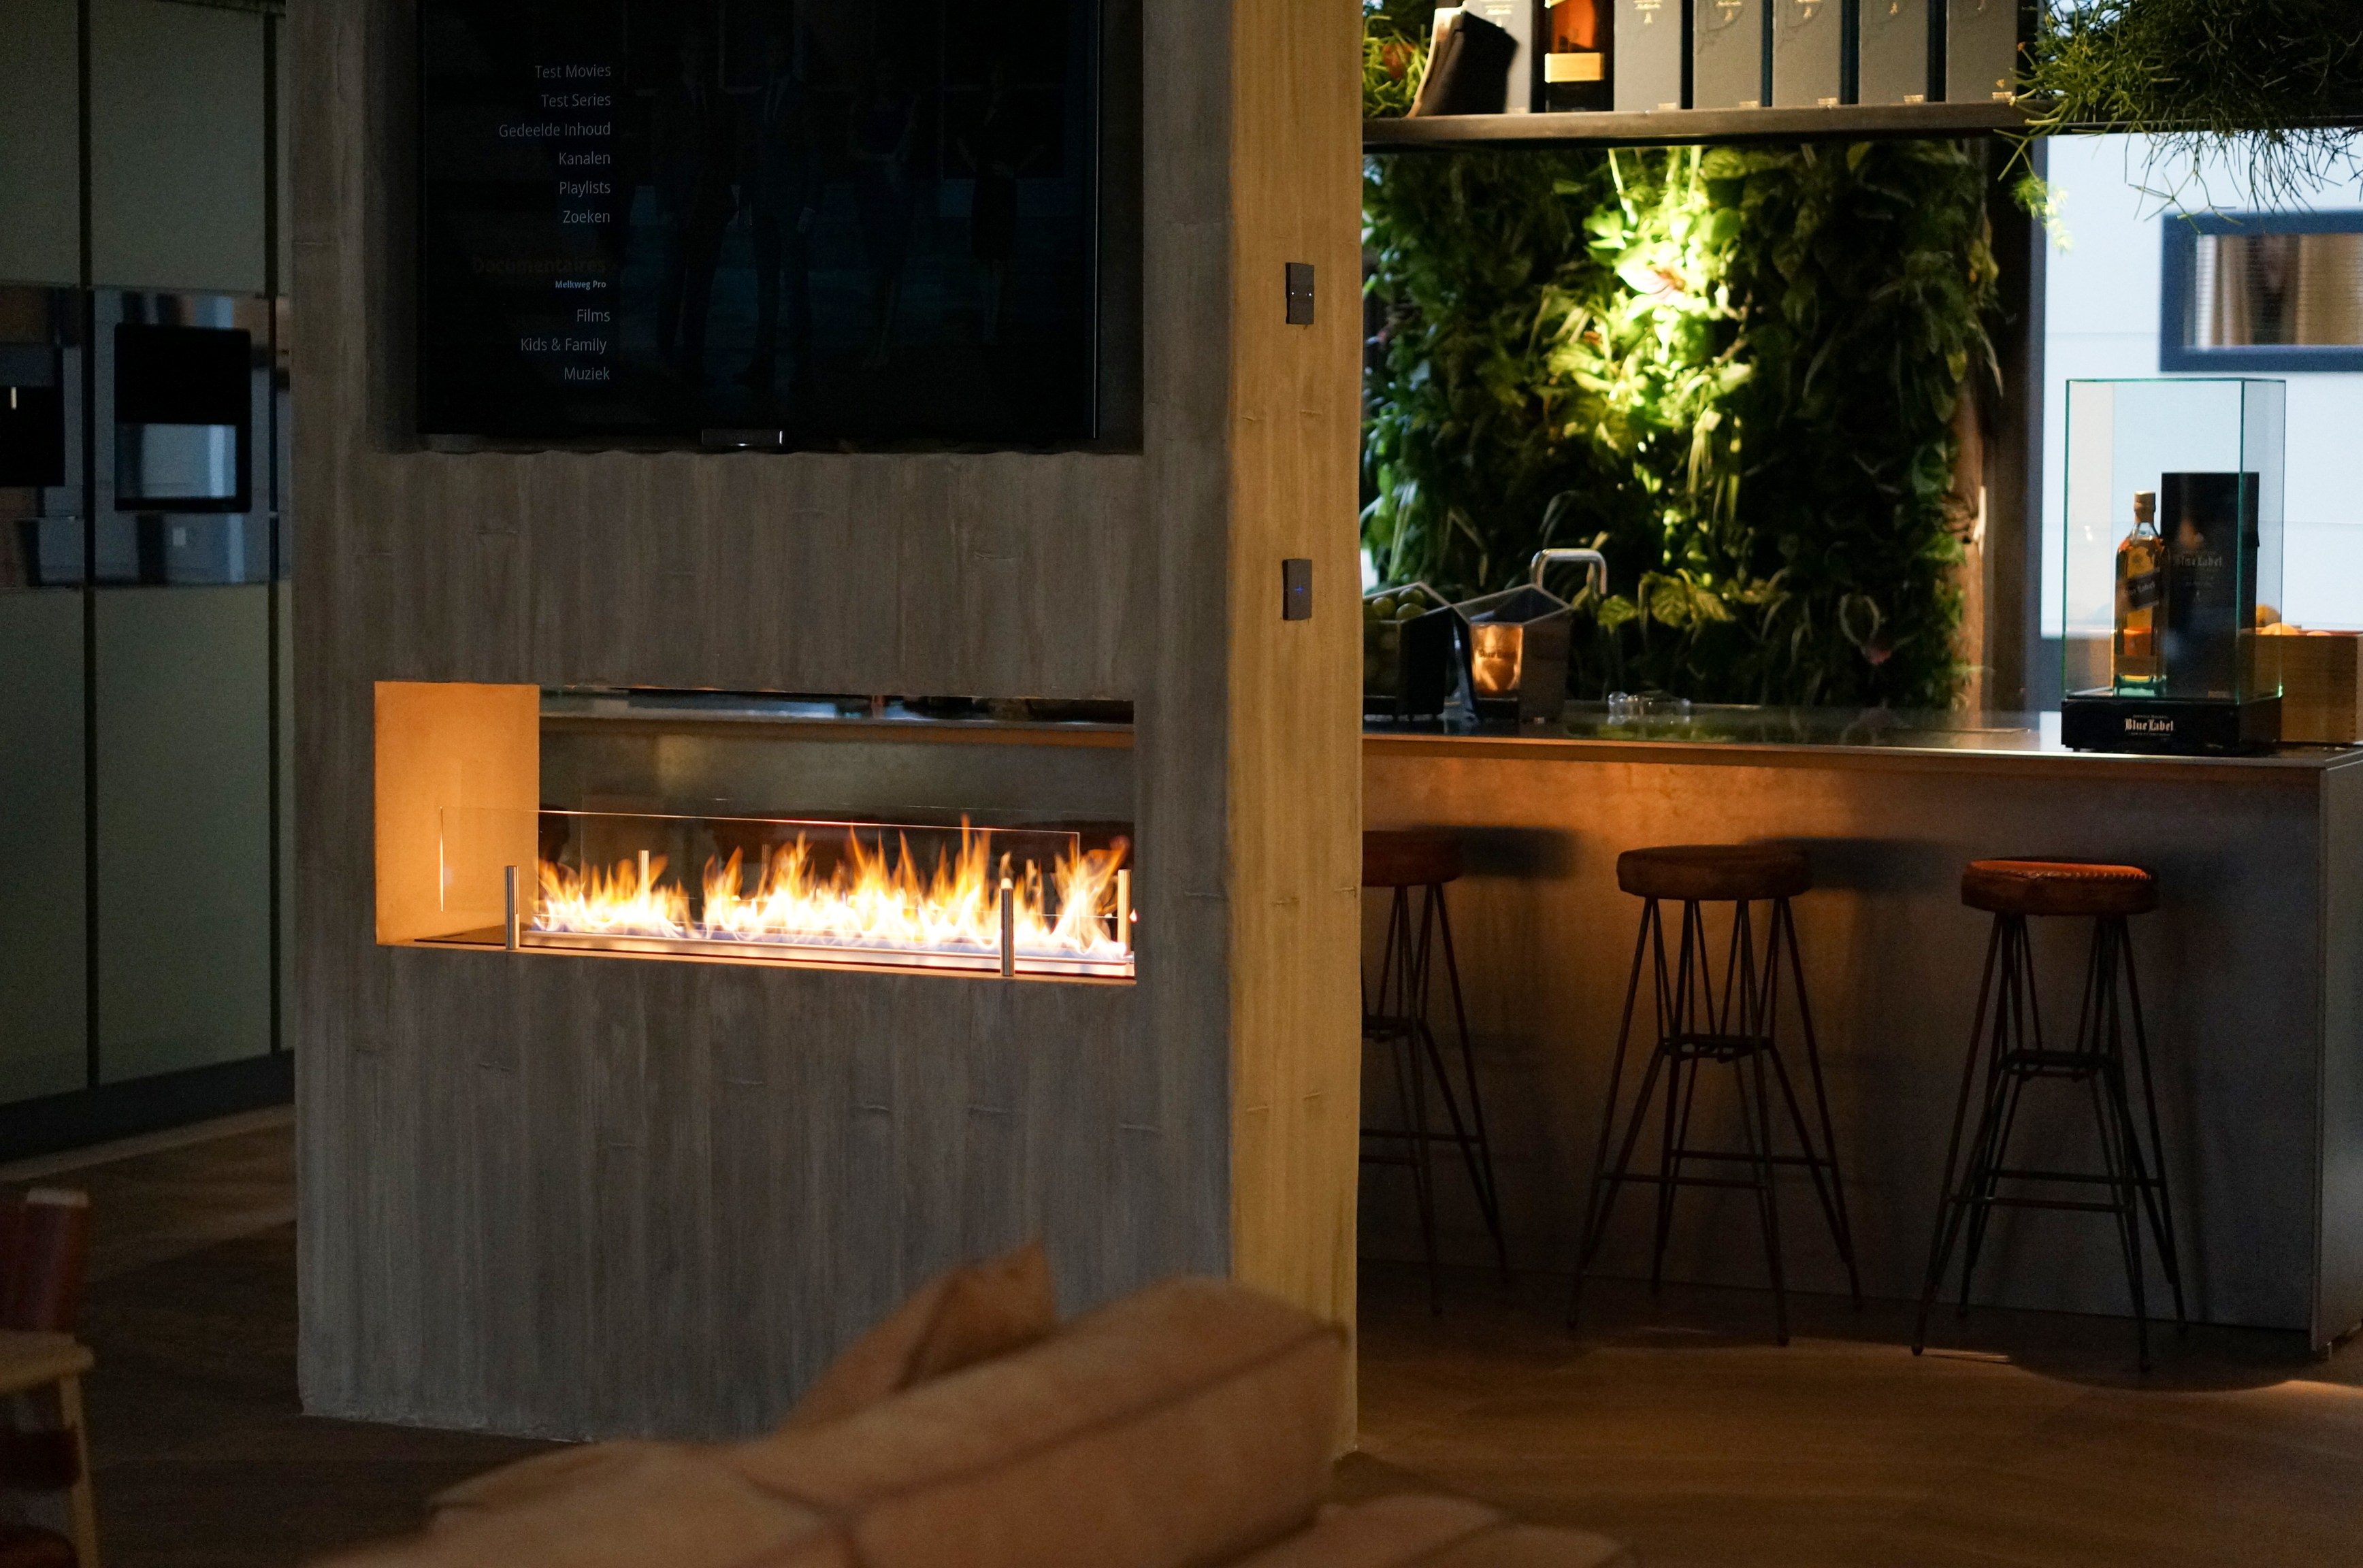 Superb Planika Fireplaces Part - 8: Built-in Fireplace Controlled By Wi-Fi And Remote Control FIRE LINE  AUTOMATIC 3 By Planika